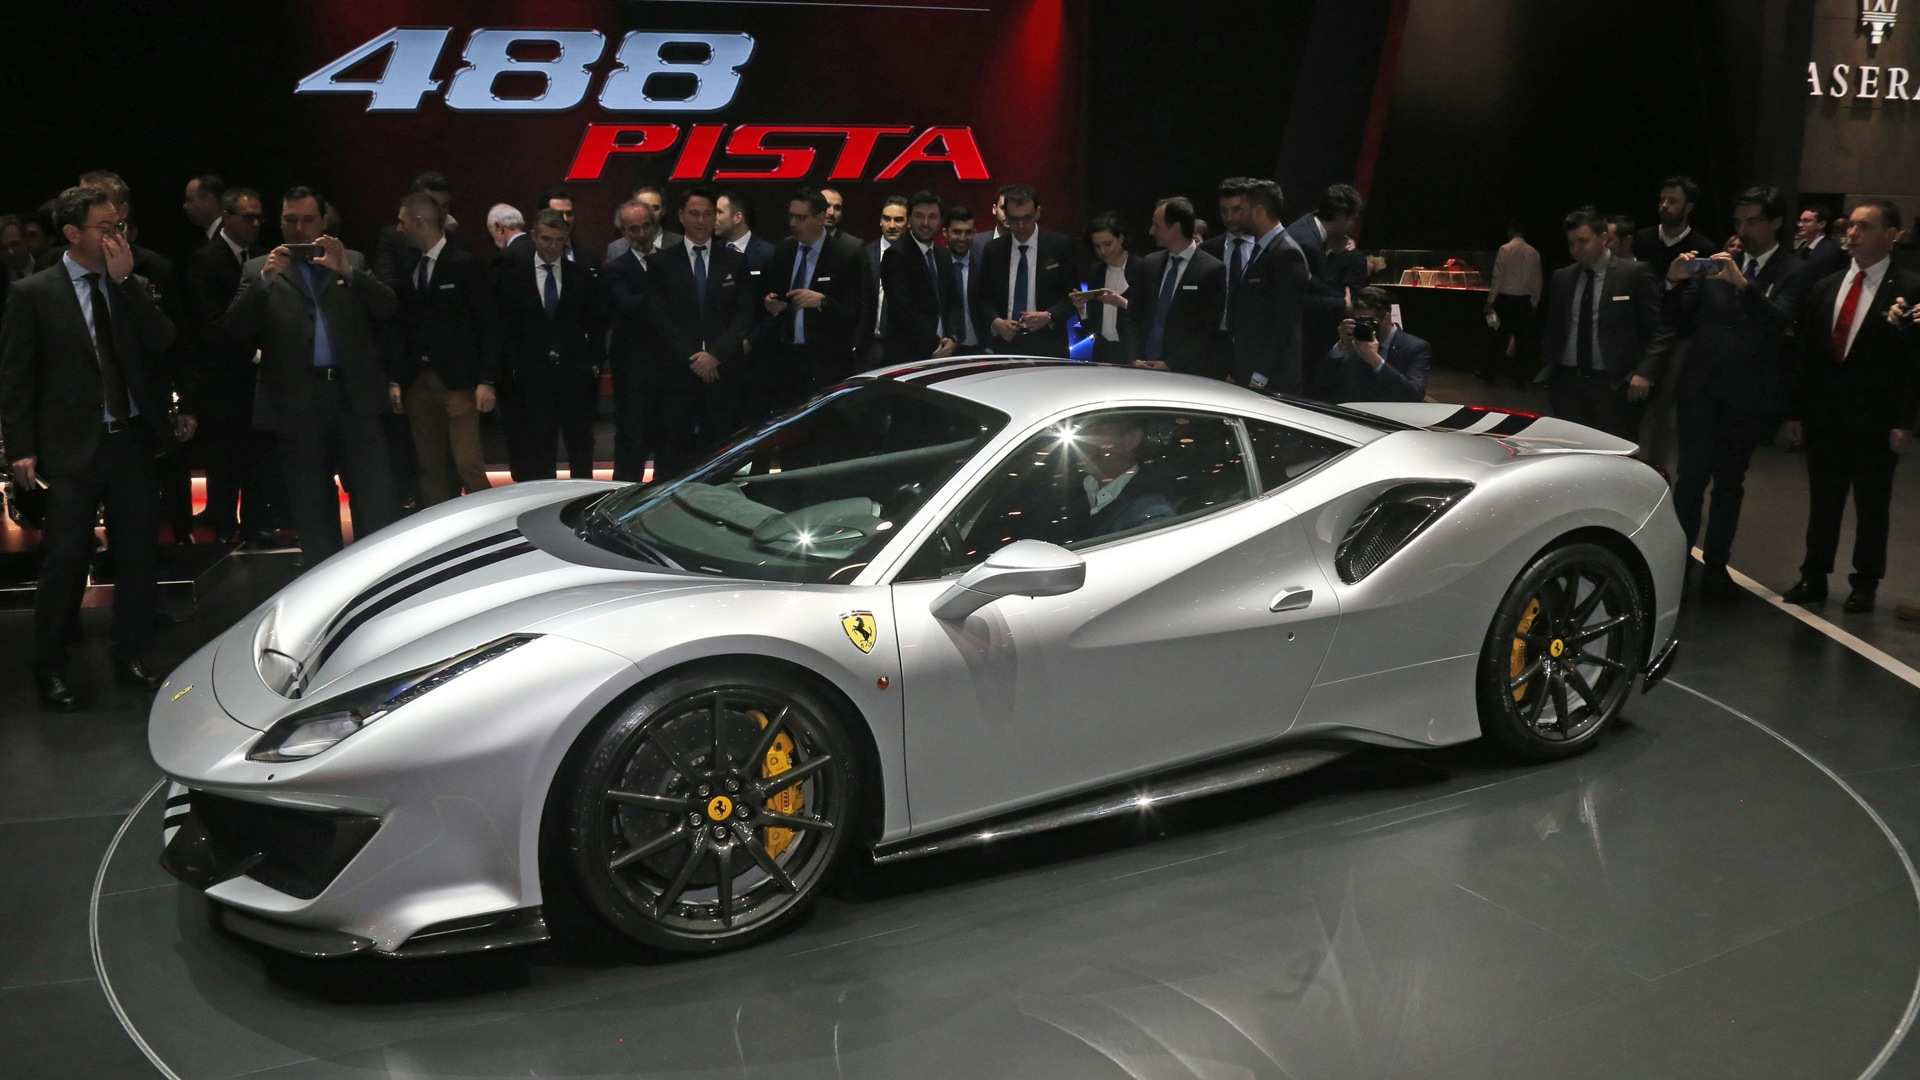 64 Gallery of 2019 Ferrari 488 Pista 2 Research New with 2019 Ferrari 488 Pista 2